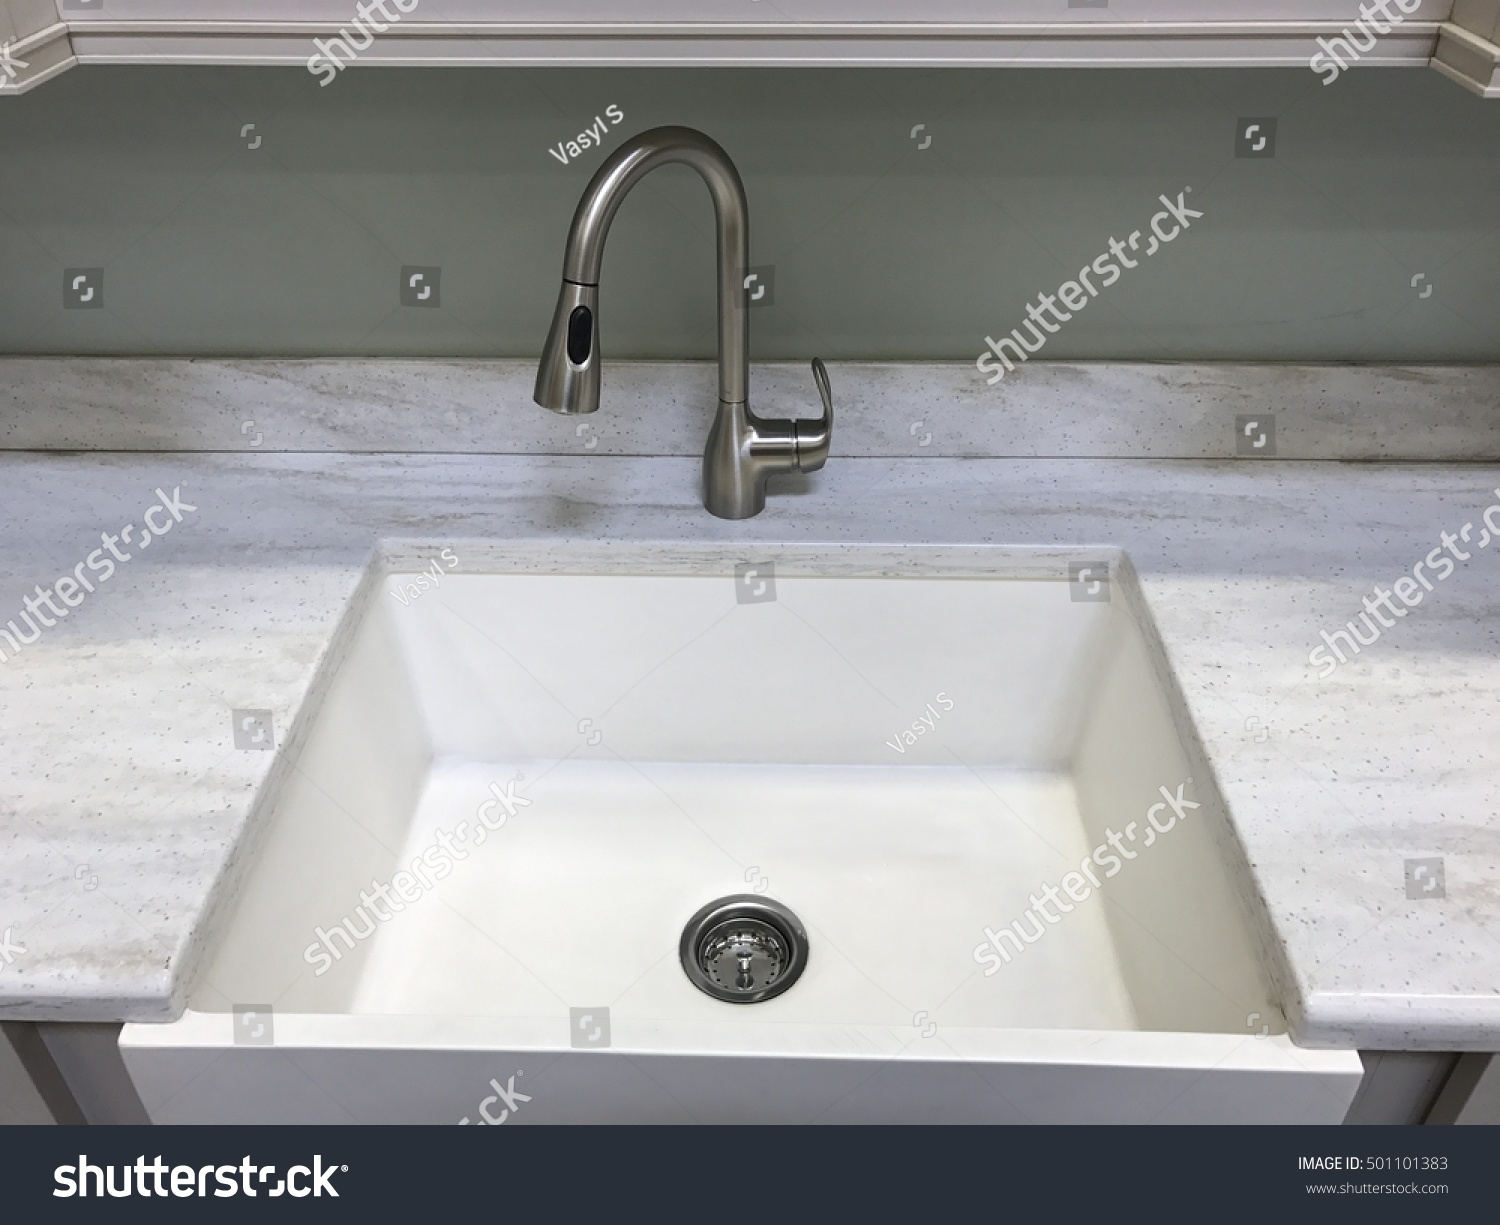 White Kitchen Sing Faucet Stock Photo (Royalty Free) 501101383 ...